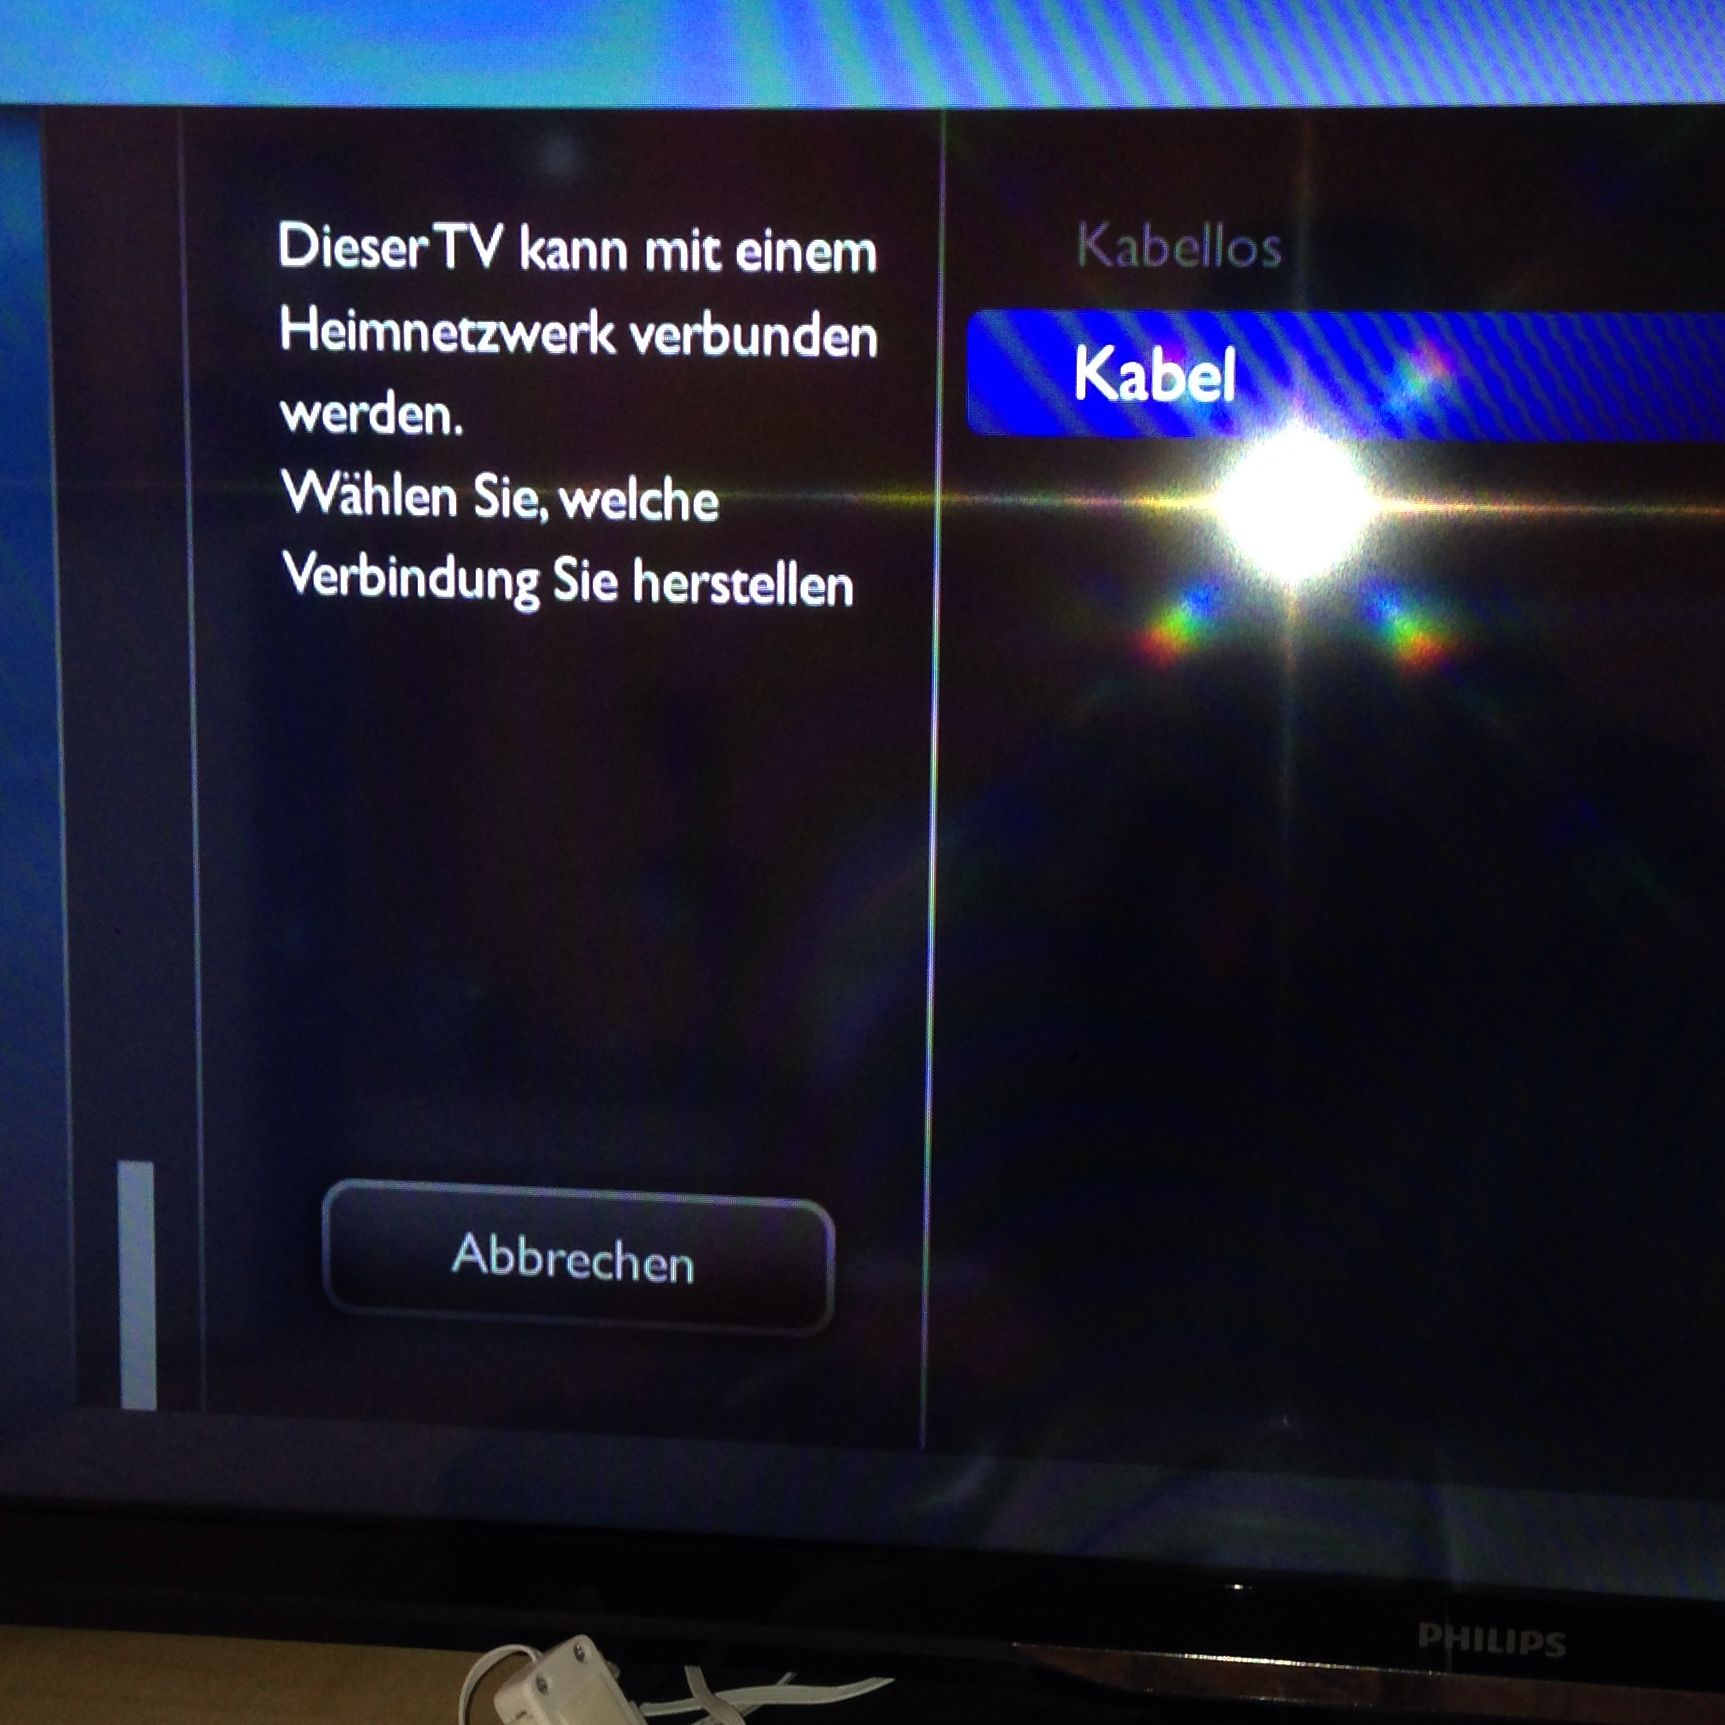 philips tv mit wlan verbinden fernseher smart tv. Black Bedroom Furniture Sets. Home Design Ideas